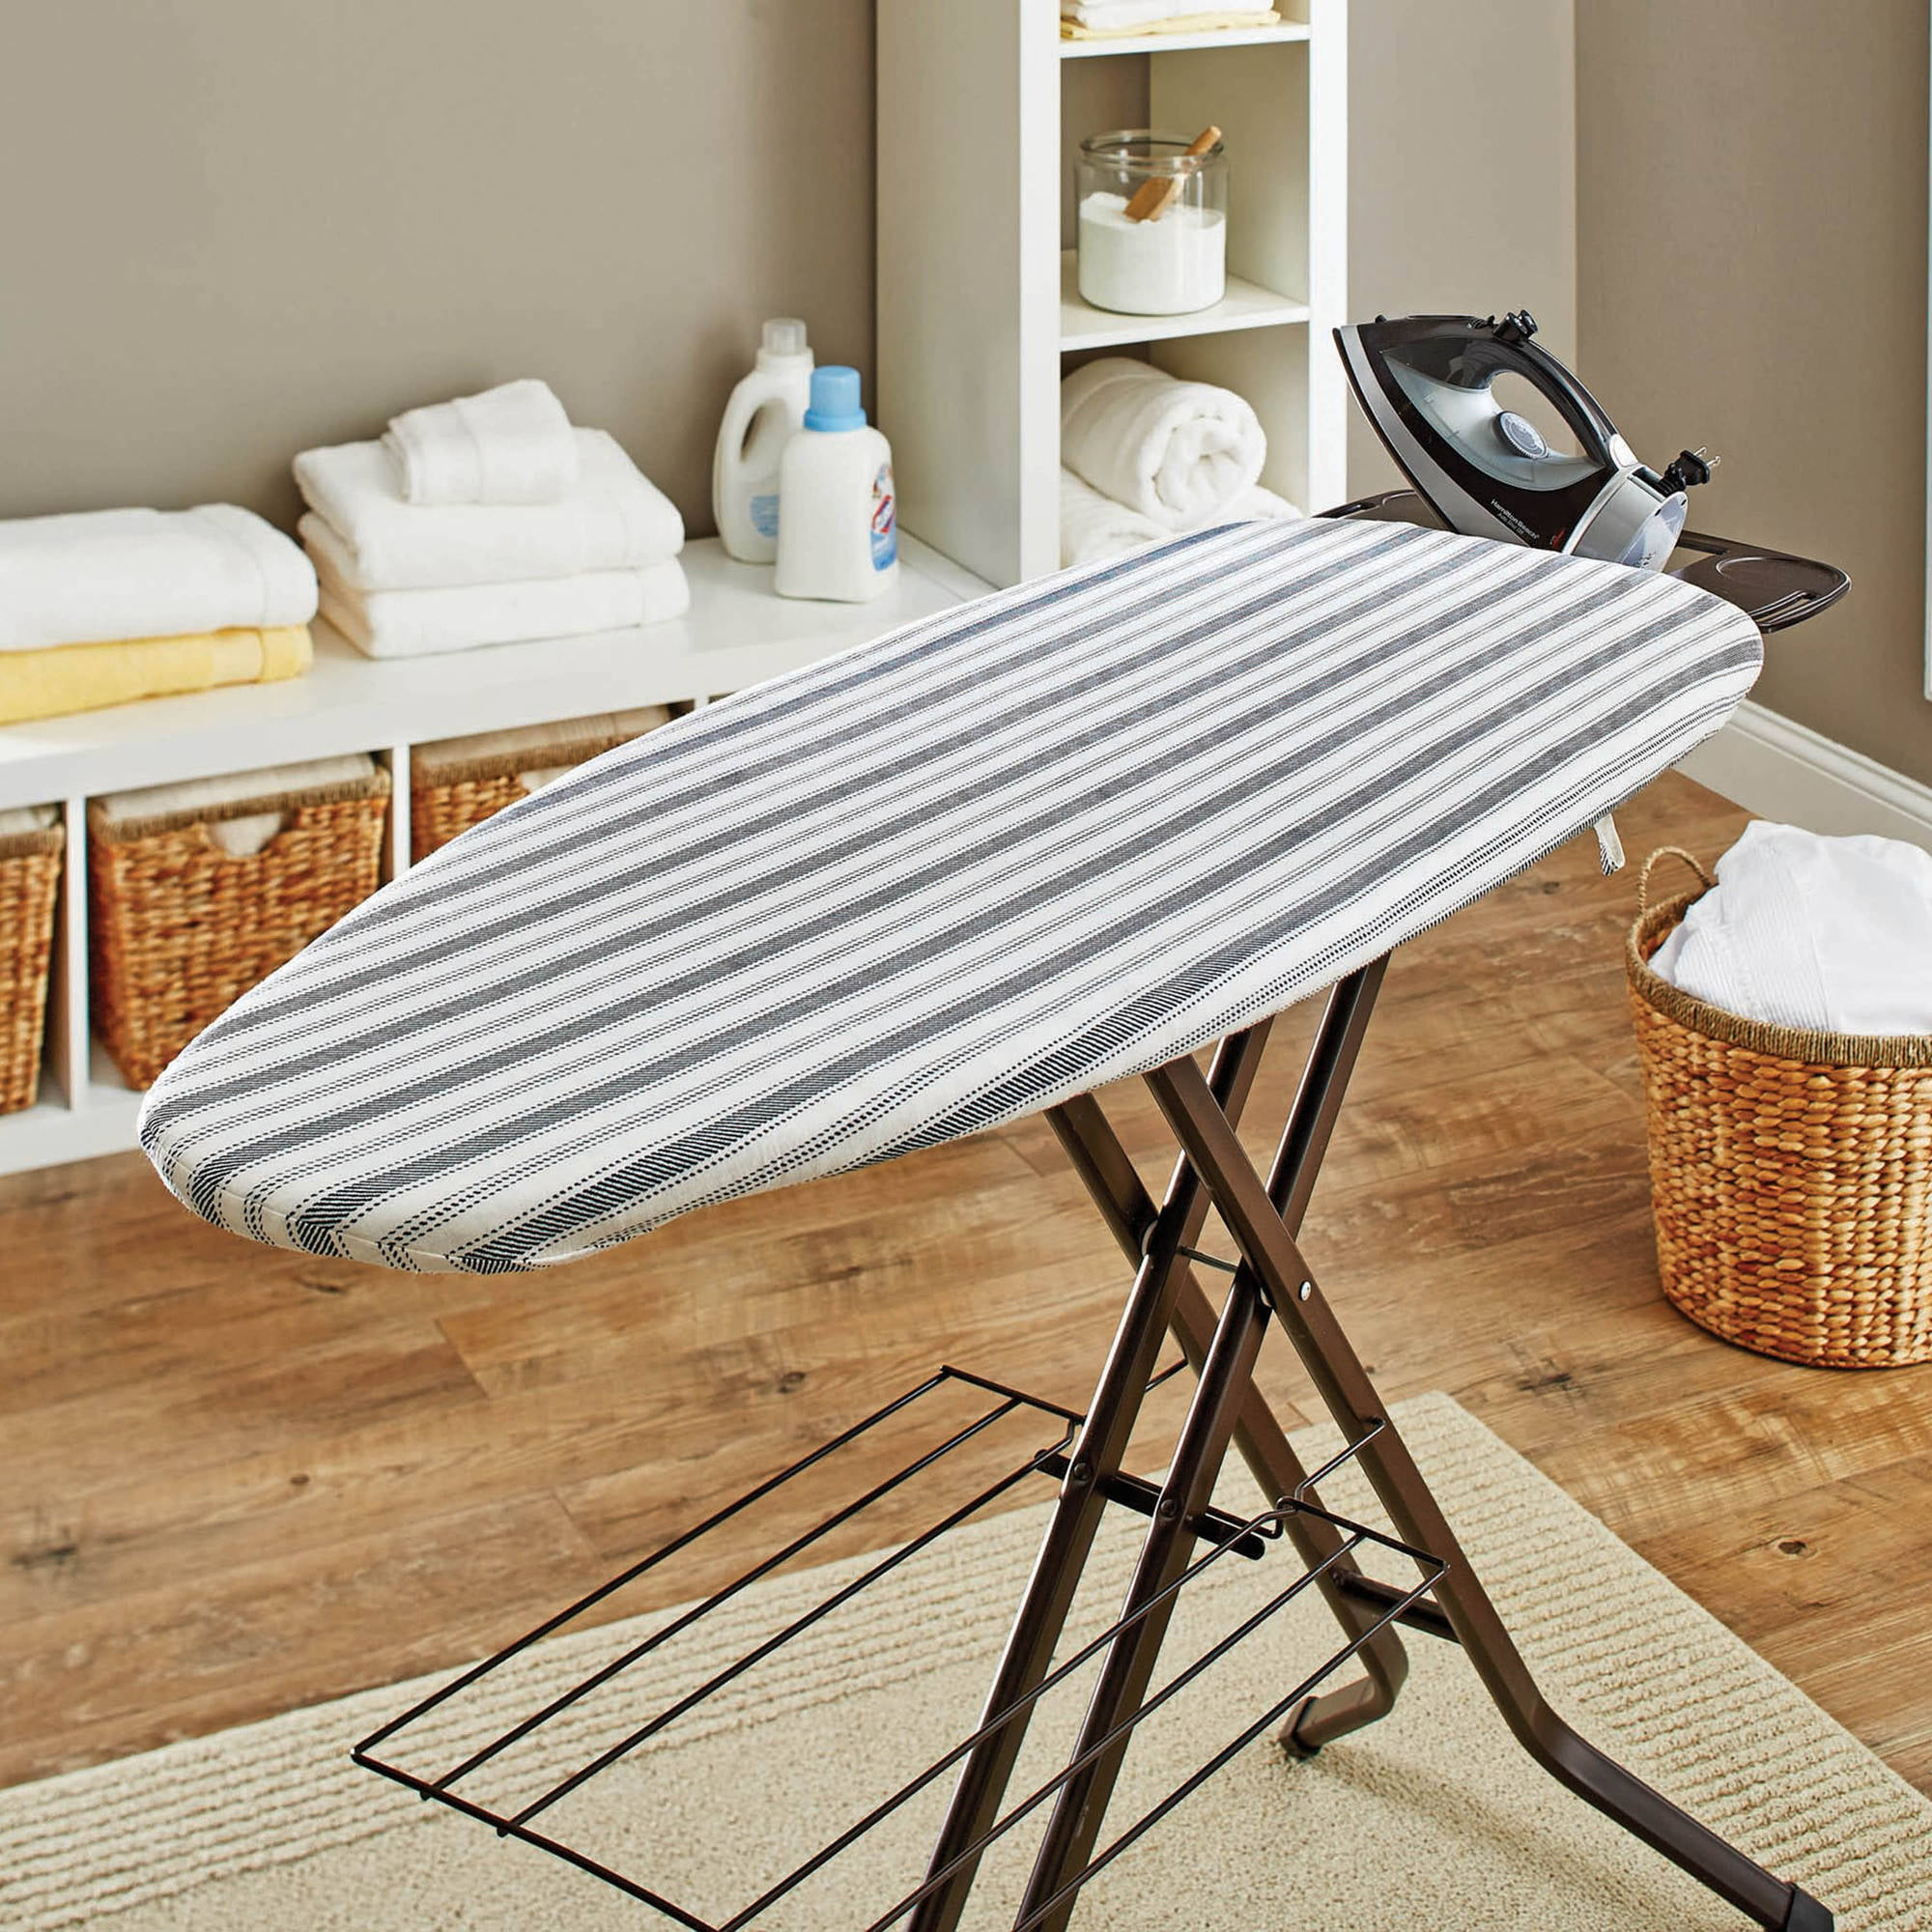 Better Homes And Gardens Wide Top Ironing Board Pad And Cover, Ticking  Stripe   Walmart.com